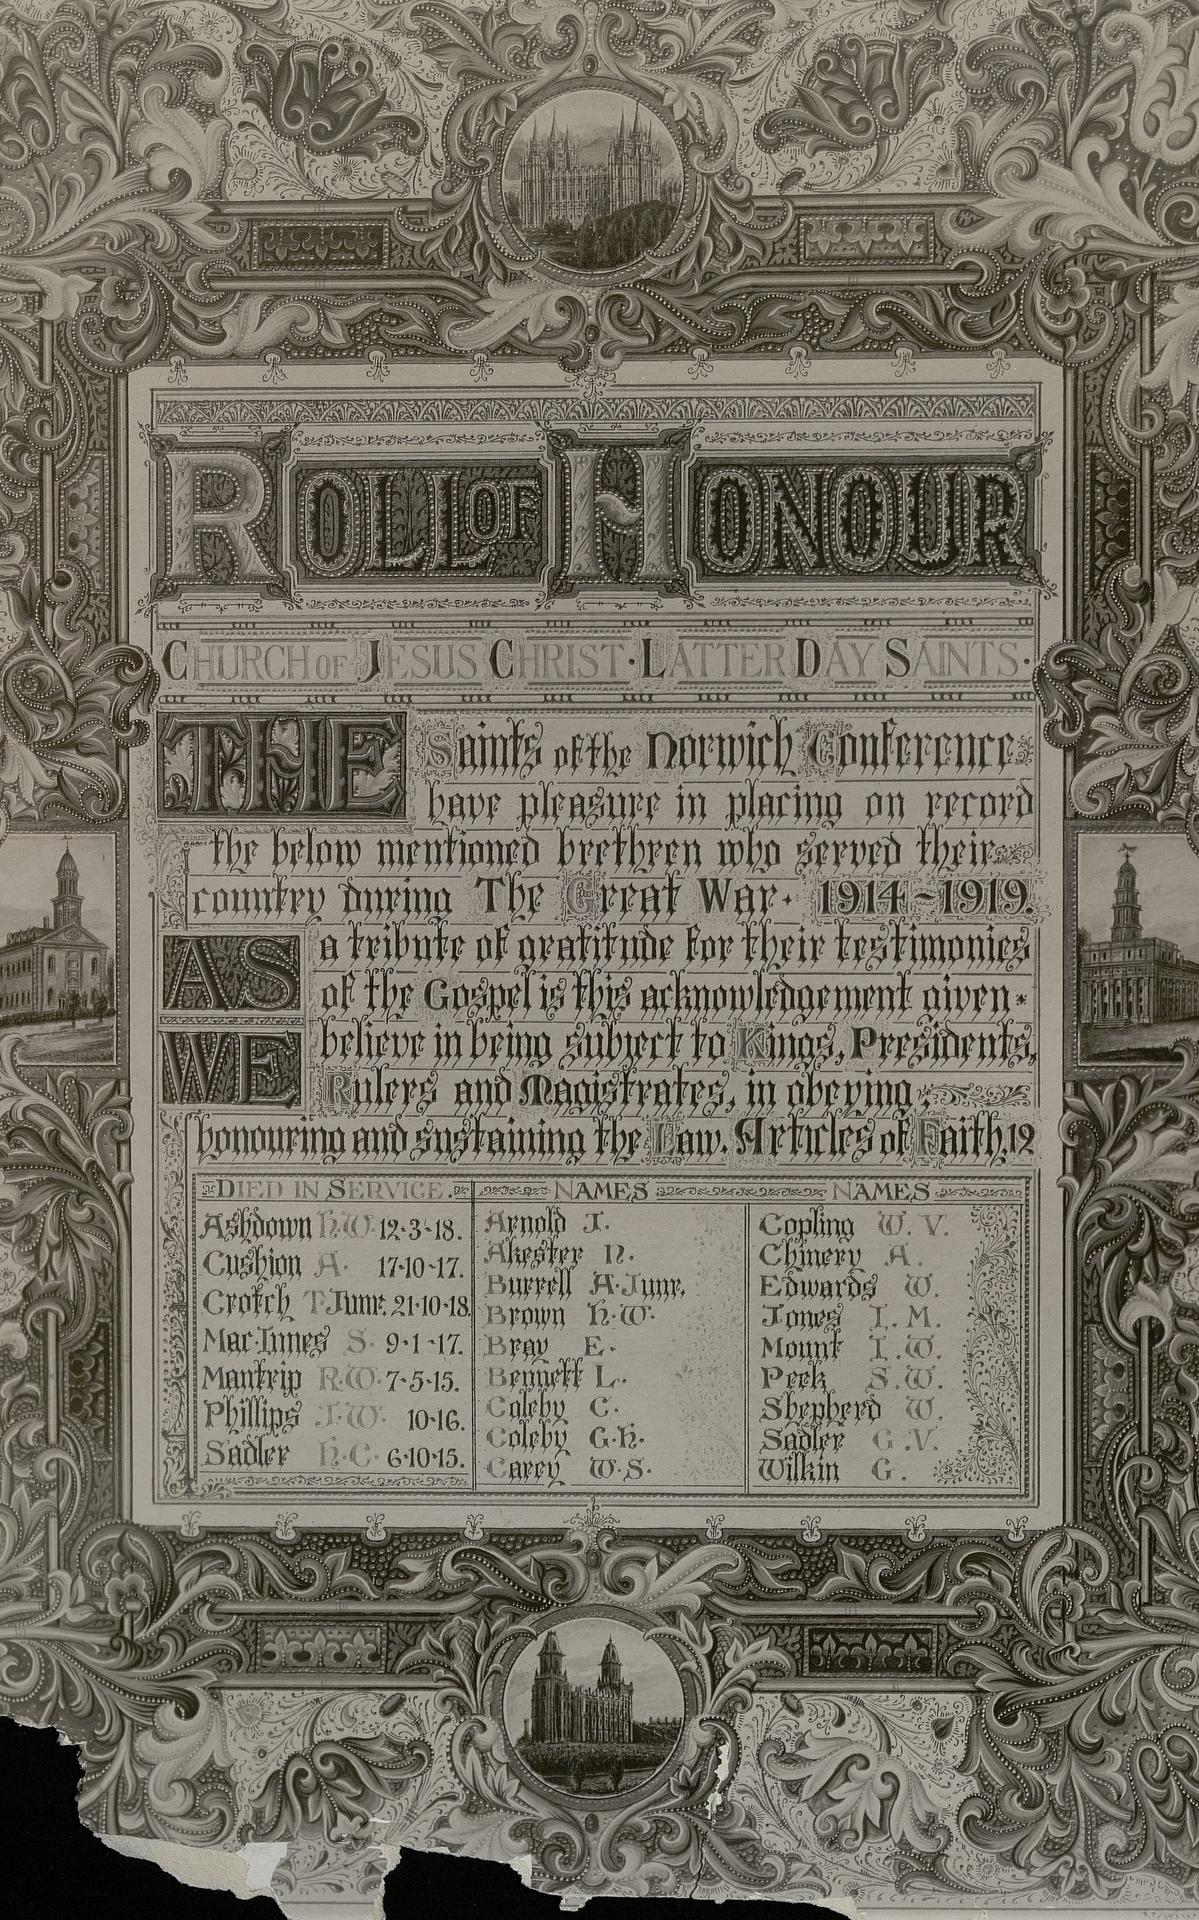 Norwich Roll of Honour